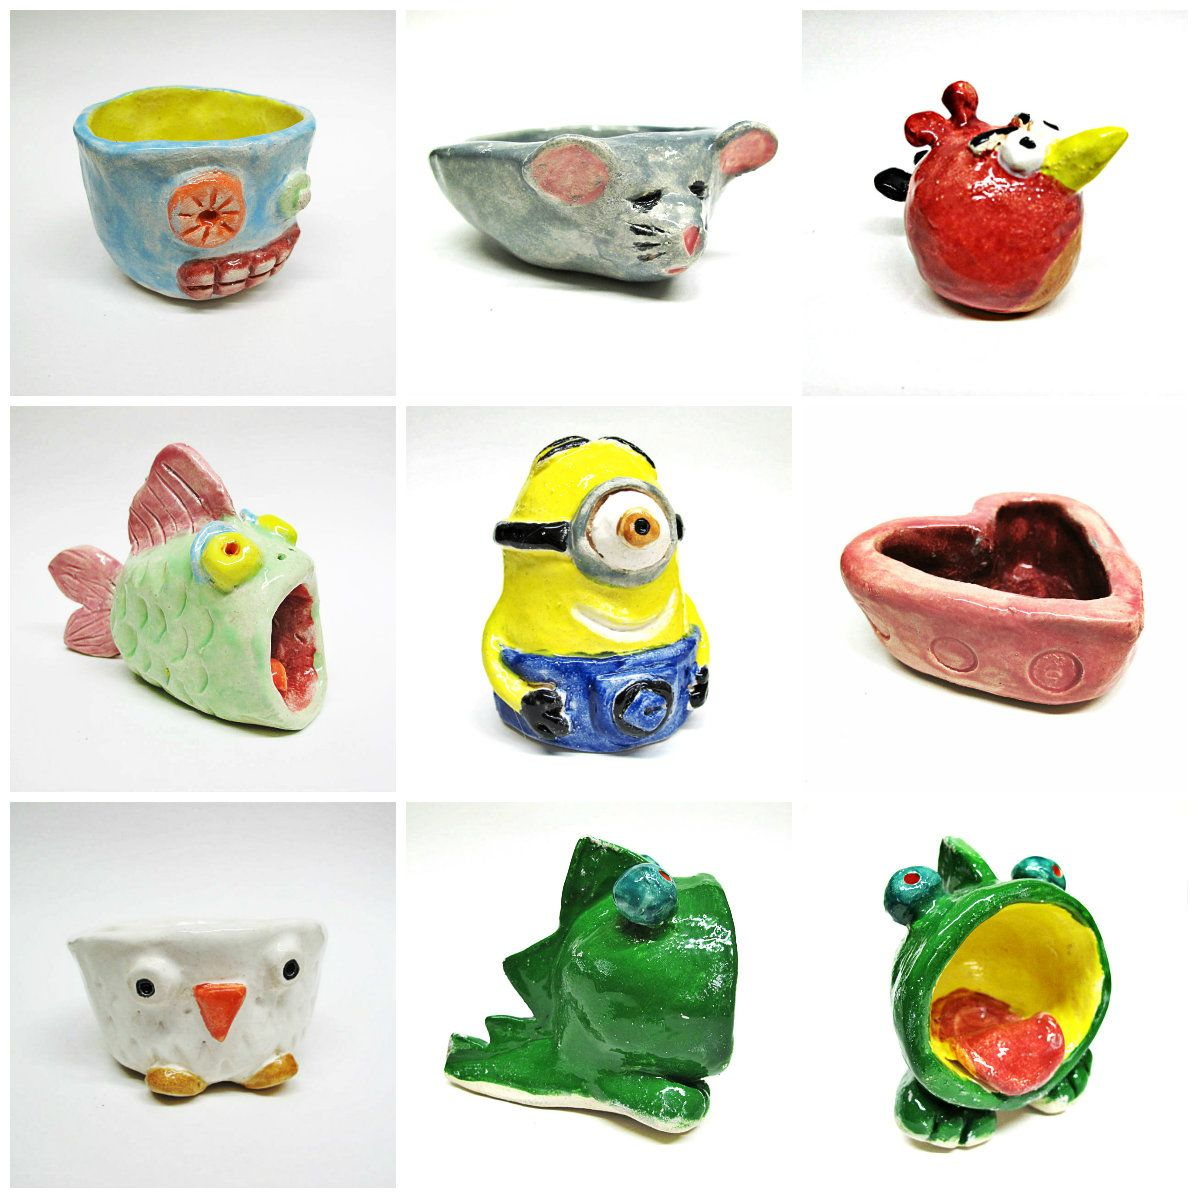 Ceramic Pot Designs Ideas: Free DIY Arts & Crafts Tutorial Clay Pinch Pot Ideas By